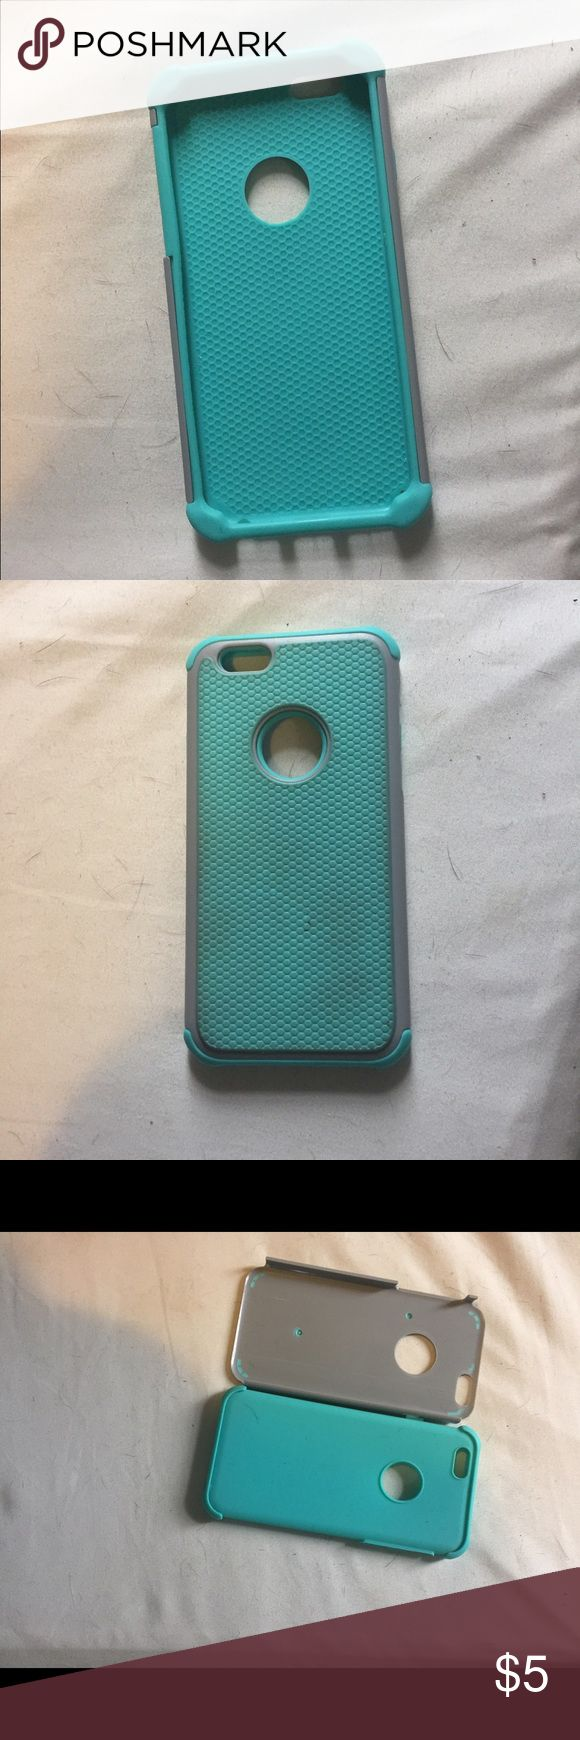 iPhone 6 case I have a IPhone 6 case, it does have a small stain on the back as you can see in the picture. It is a great case I just switched phones. Accessories Phone Cases